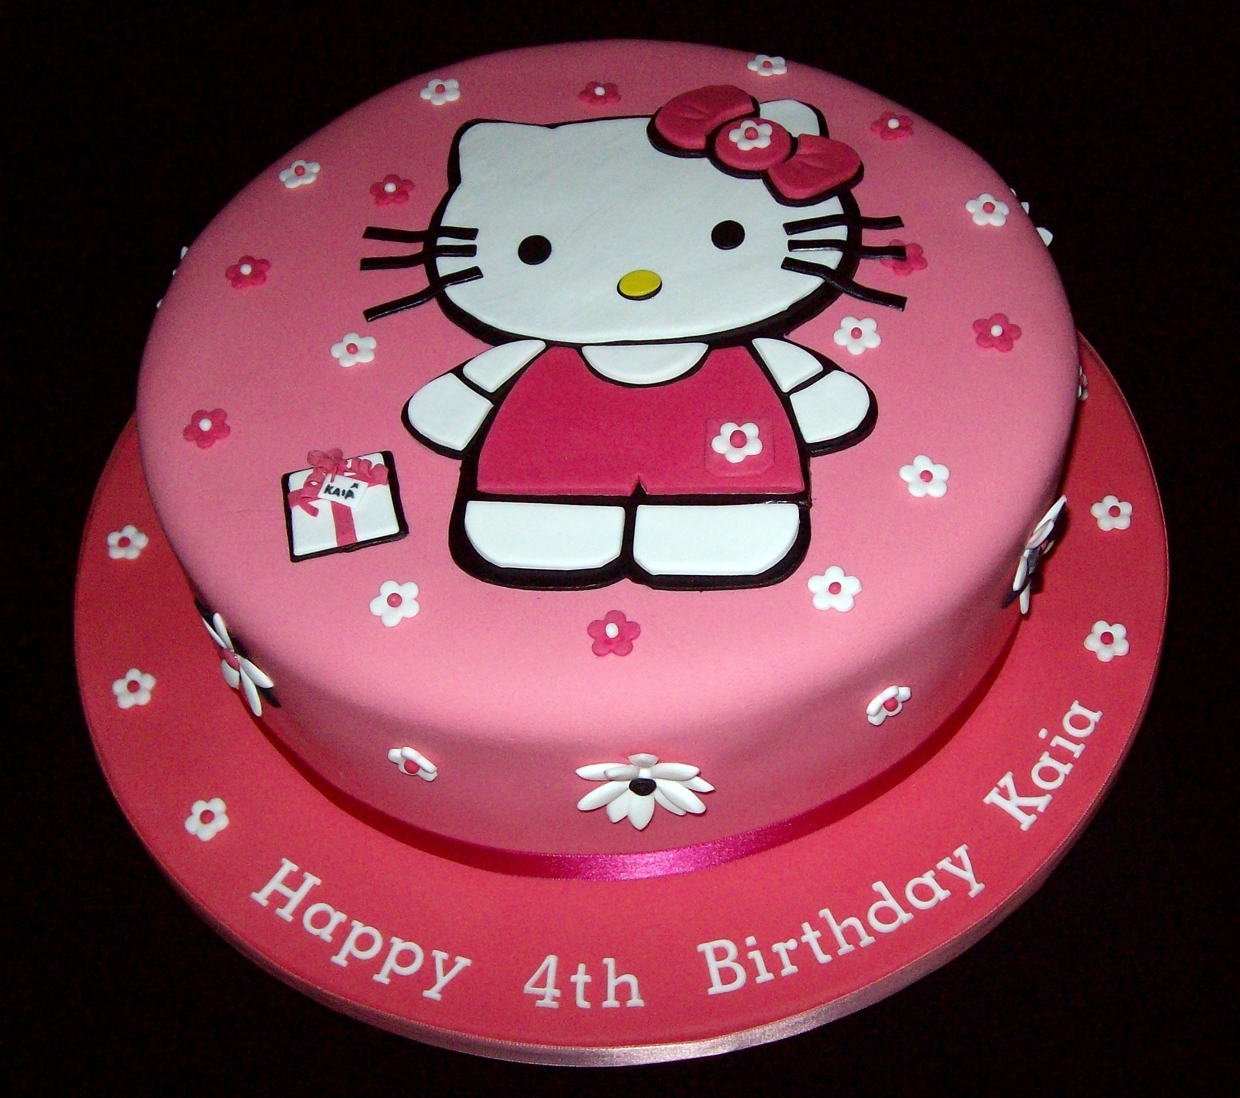 Images Of A Hello Kitty Cake : 10 Hello Kitty Cake Decorations Ideas CAKE DESIGN AND ...